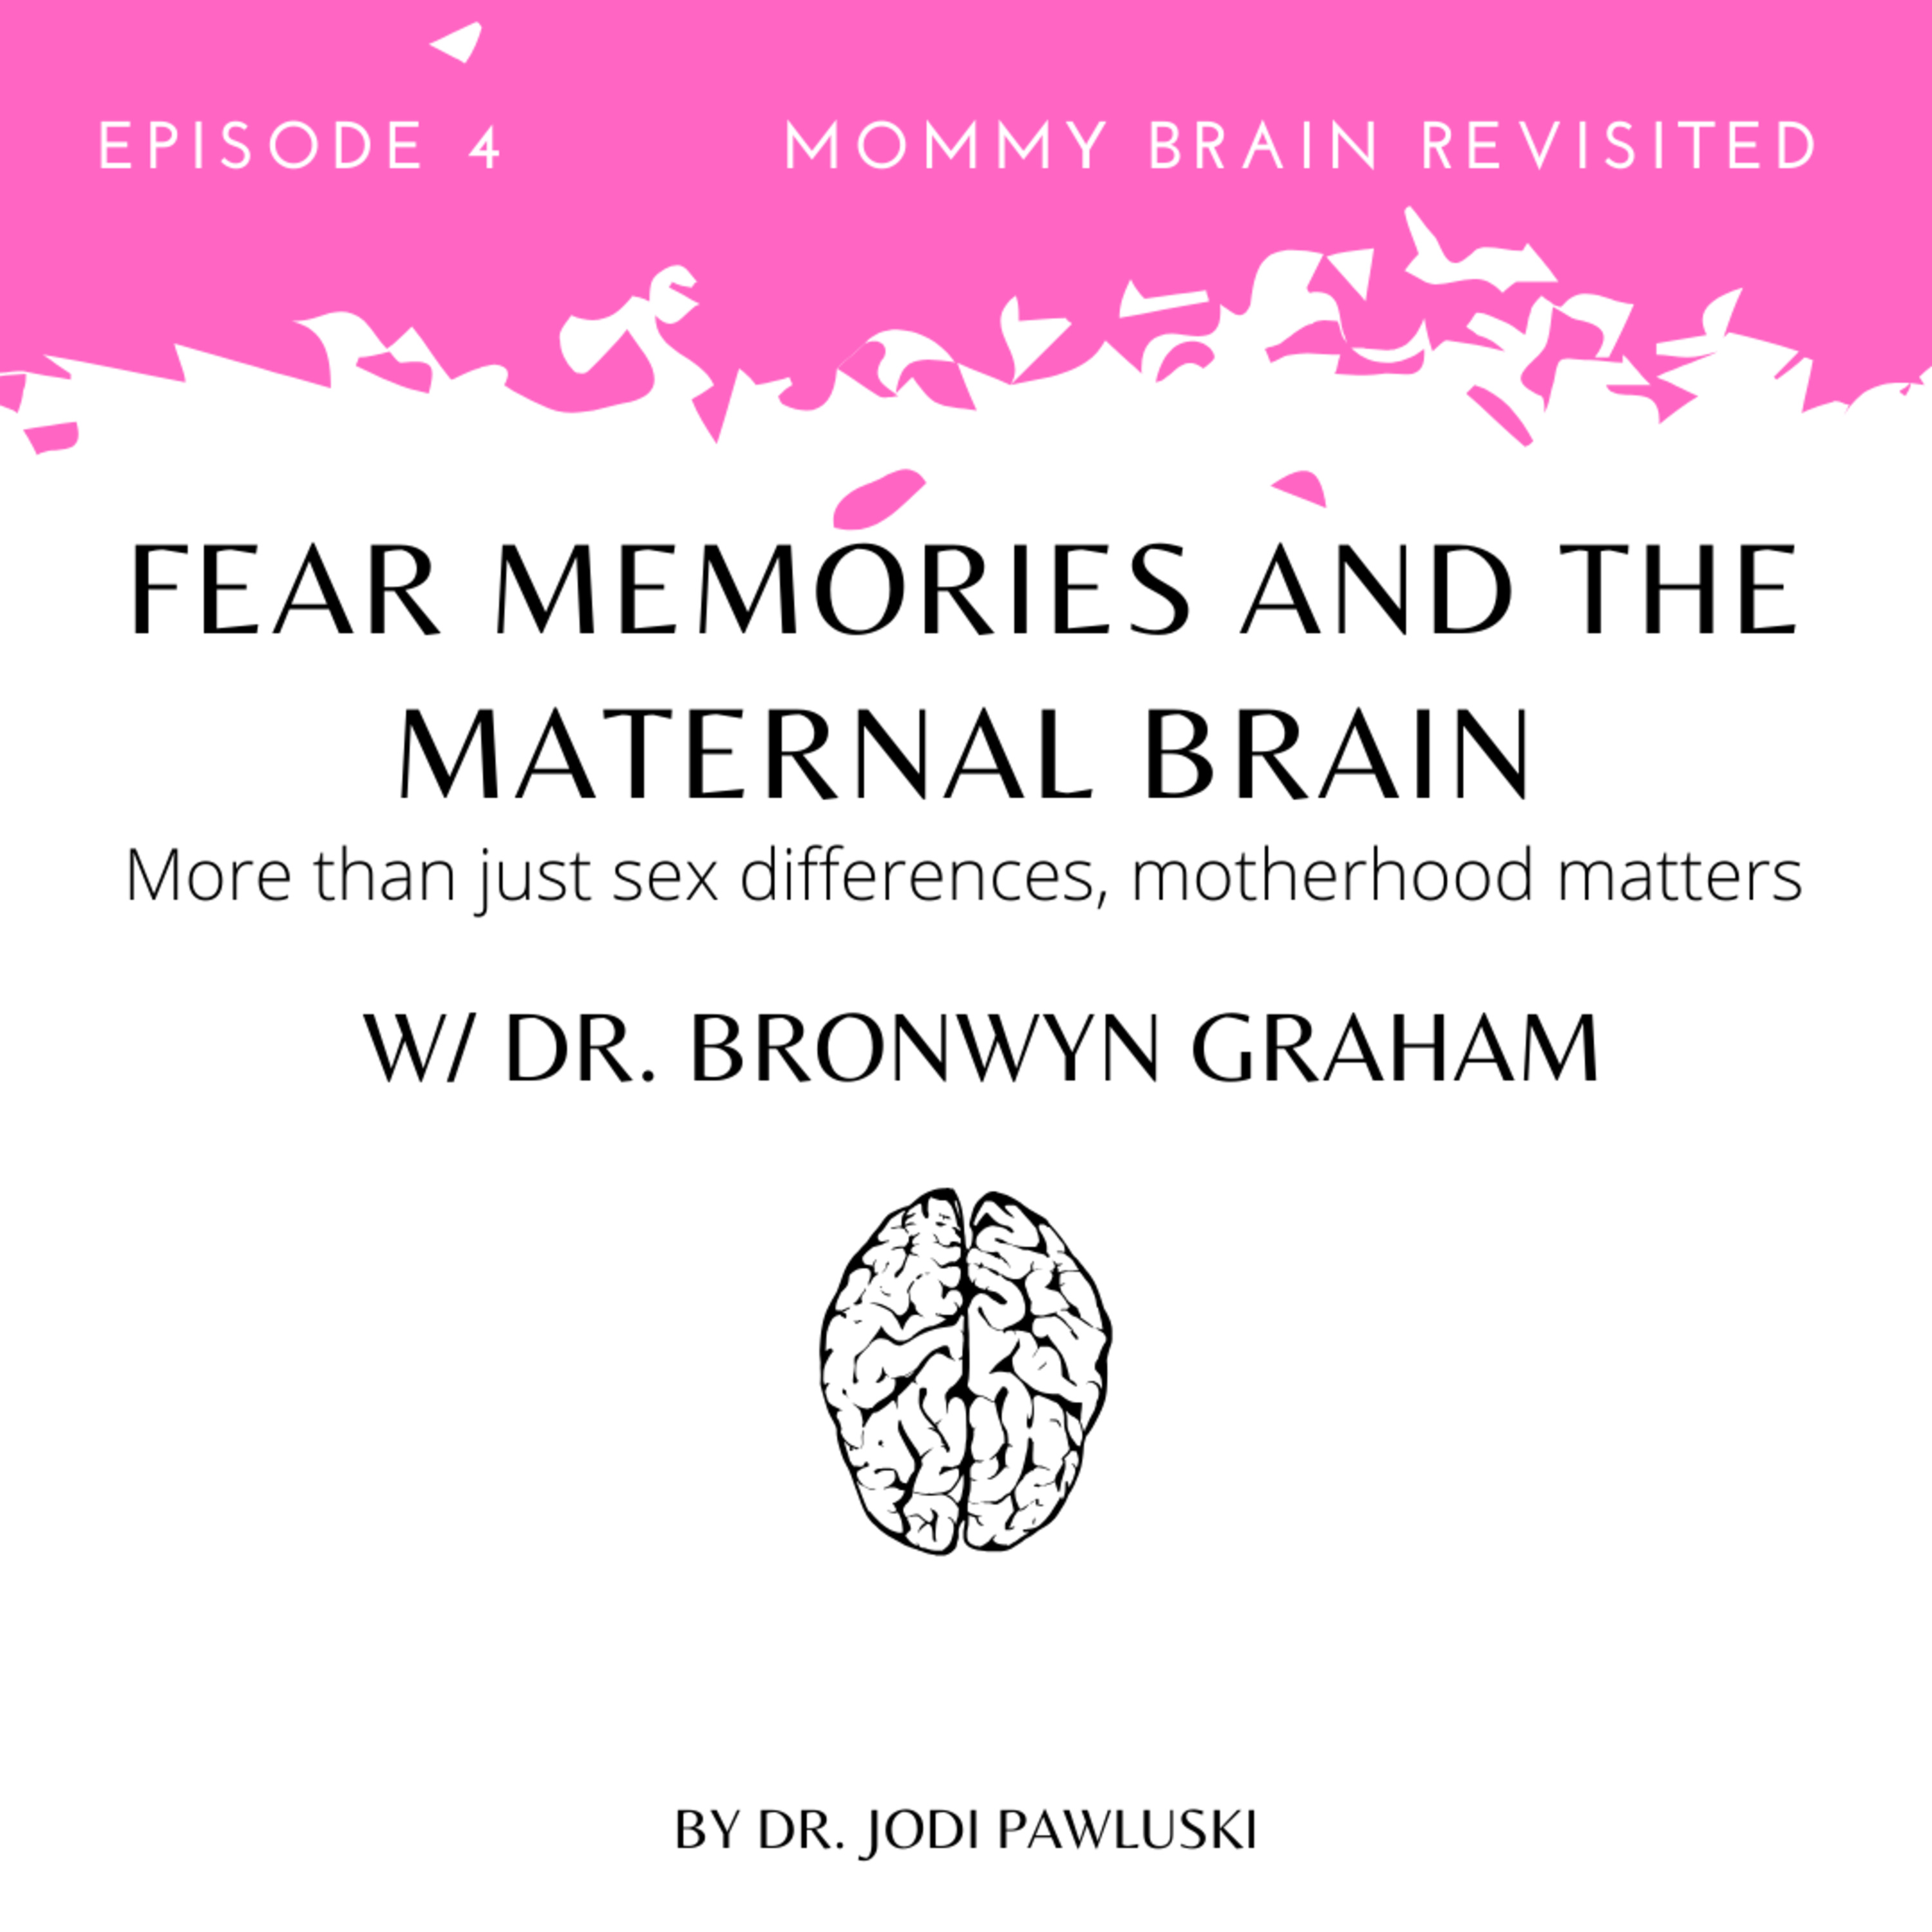 Fear Memories and the Maternal Brain: More than just sex differences, motherhood matters.